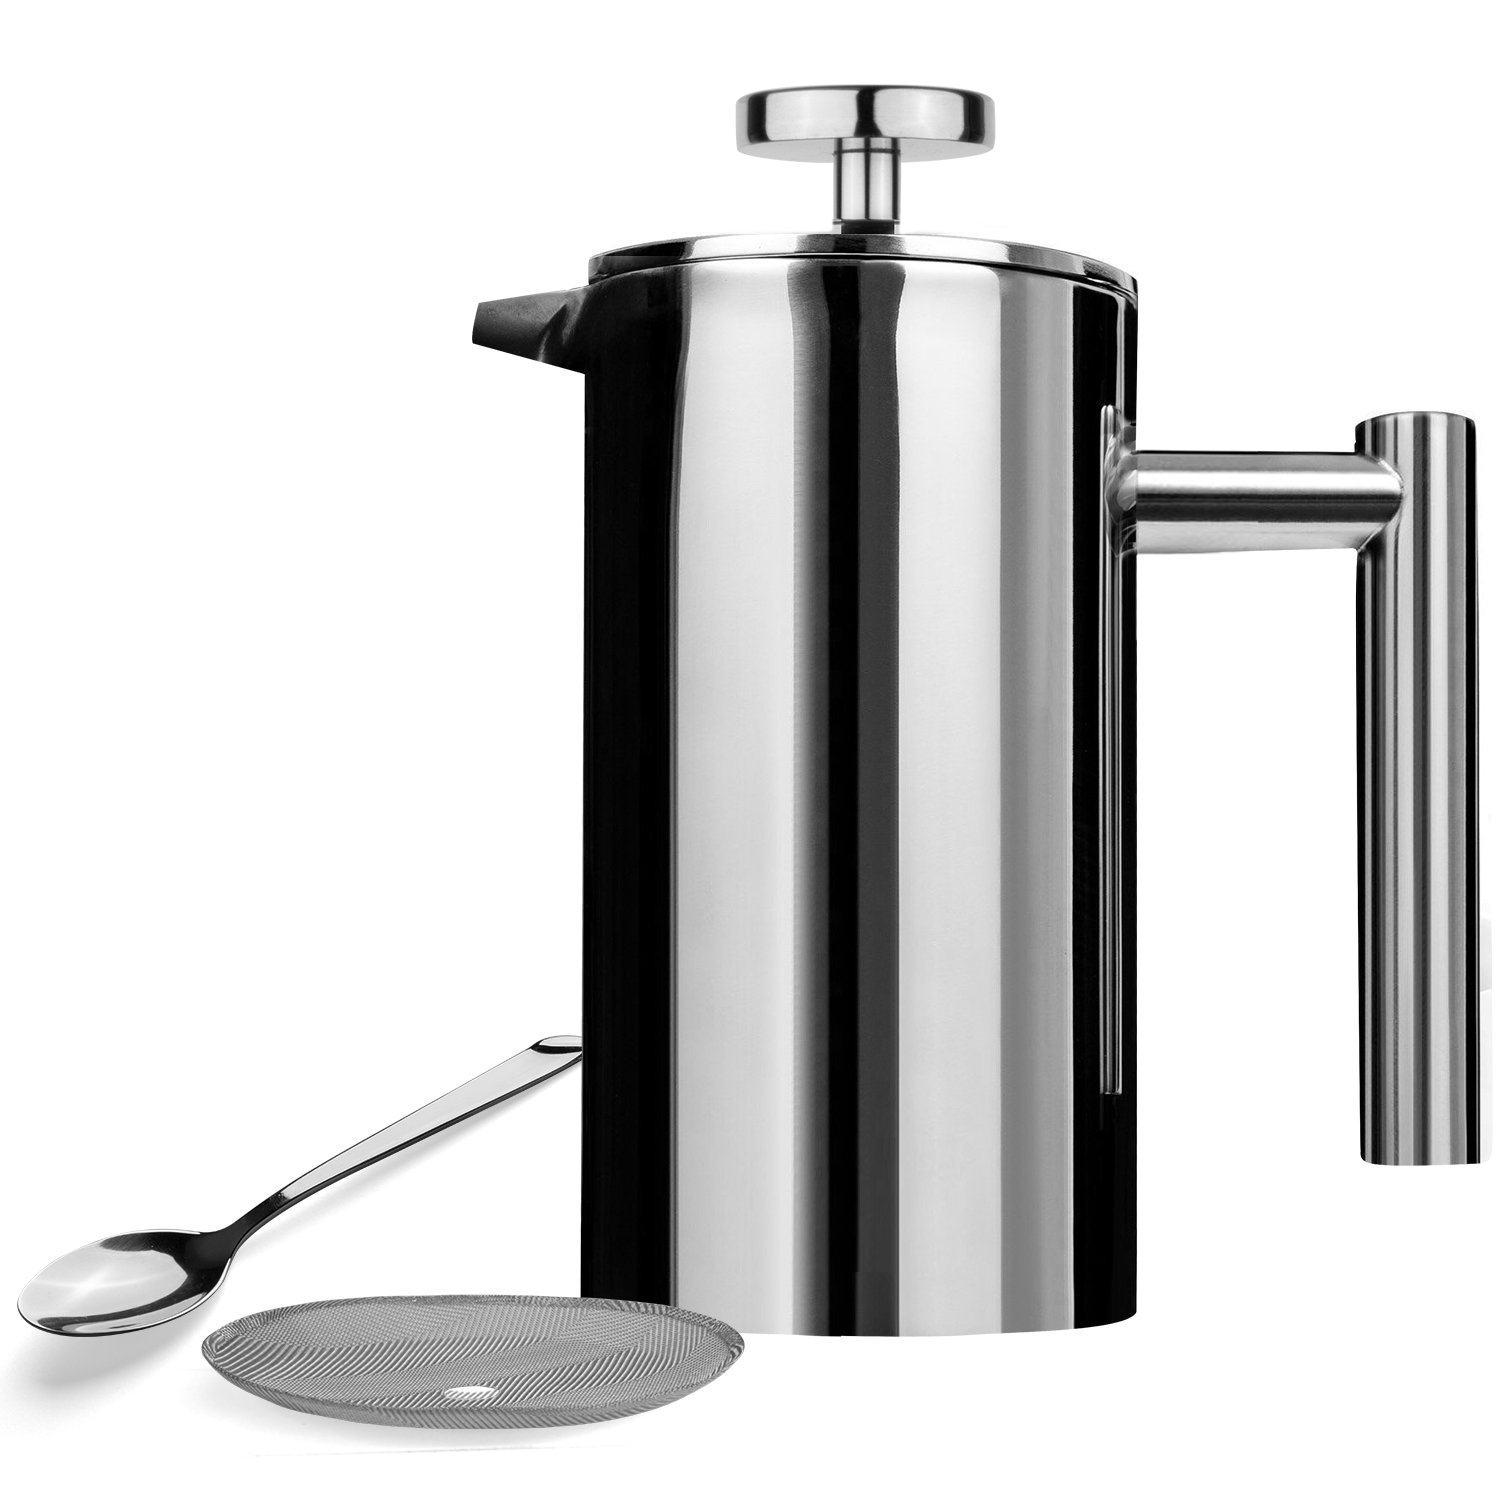 AMOVEE French Press Coffee Maker Tea Maker, 304 Stainless Steel Double Insulation, with Espresso Spoon and Bonus Screen (350ML, 12 oz) by AmoVee (Image #1)